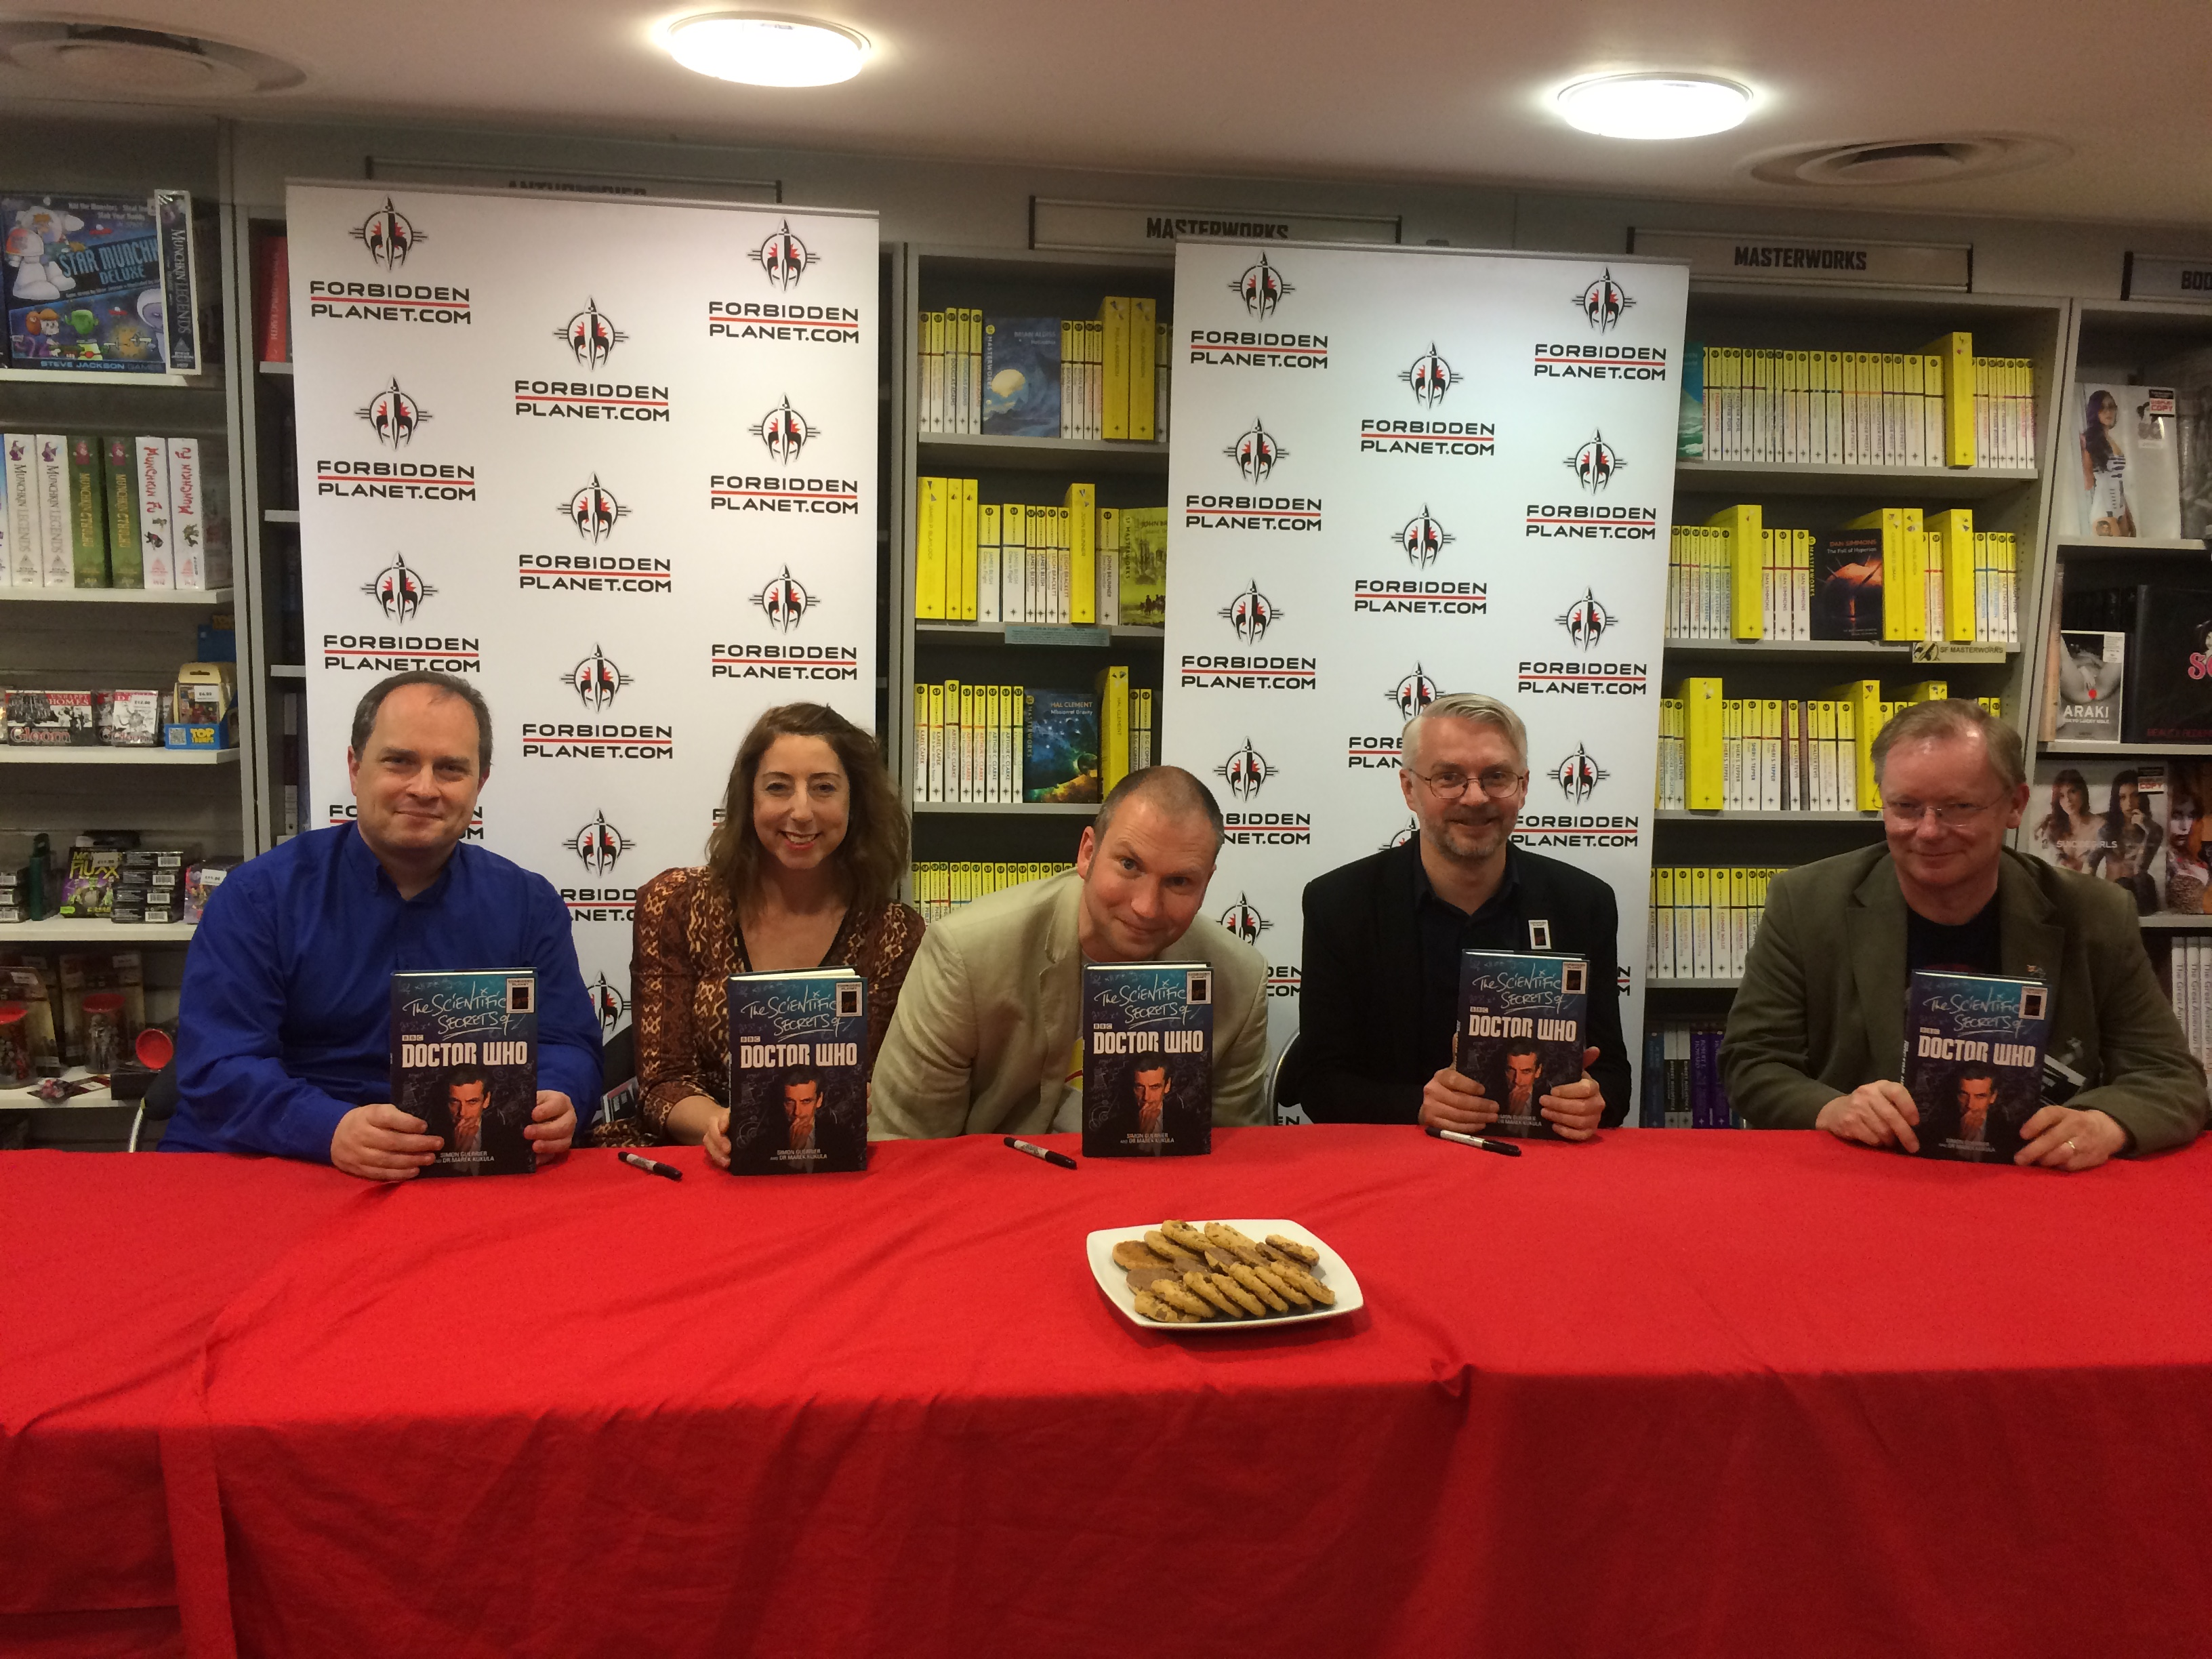 Forbidden Planet Signing